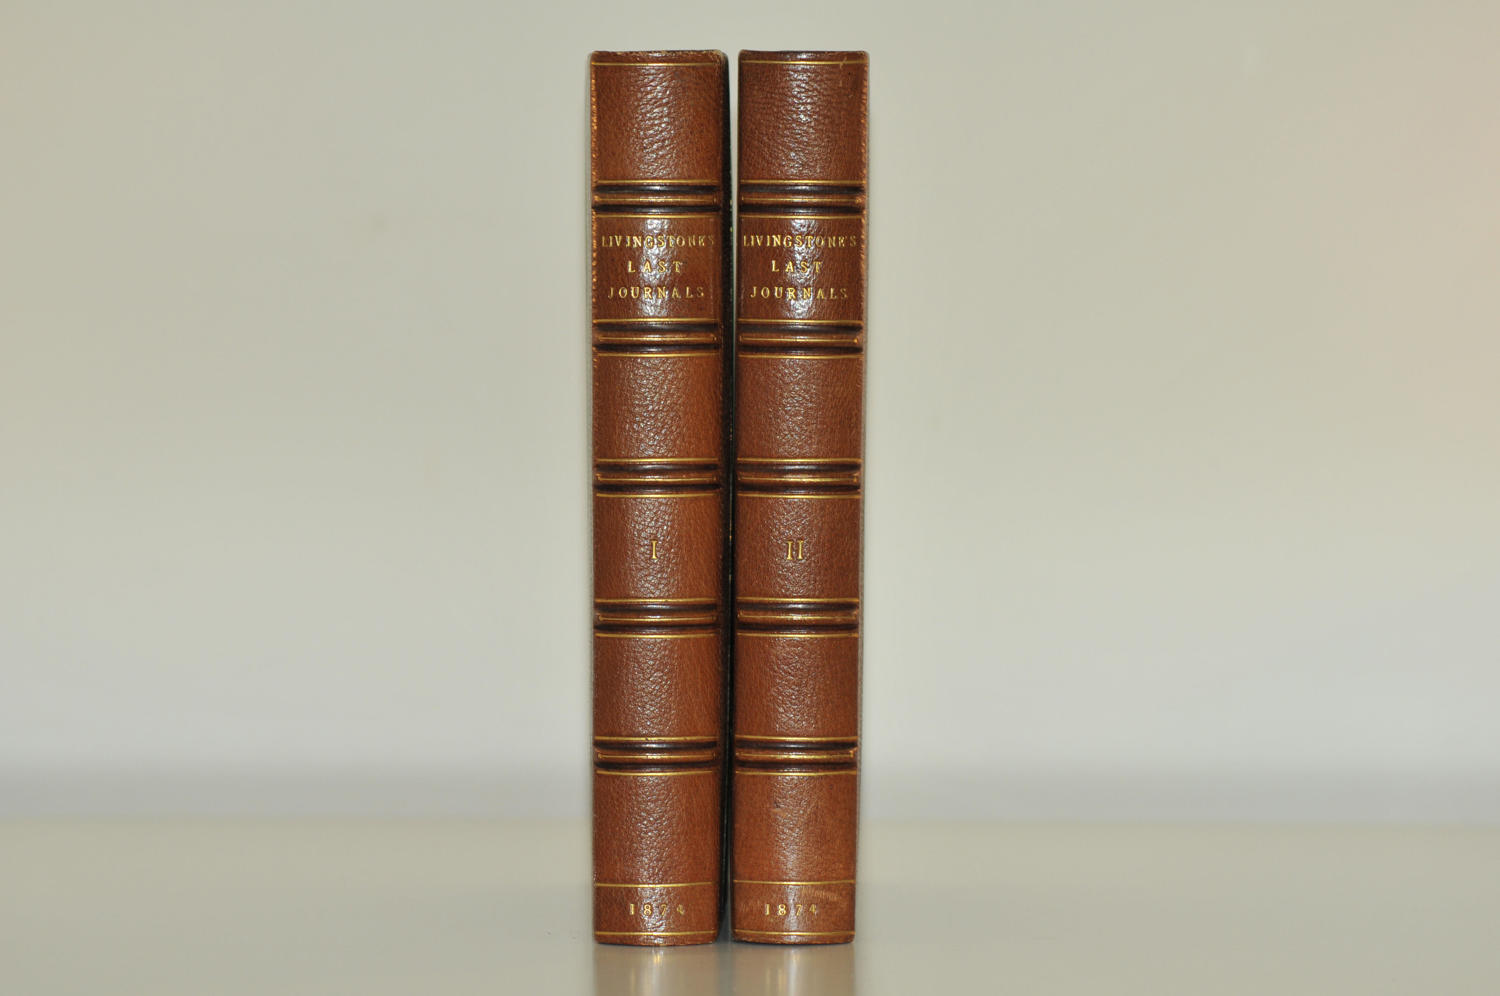 Last Journals of David Livingstone' in Central Africa